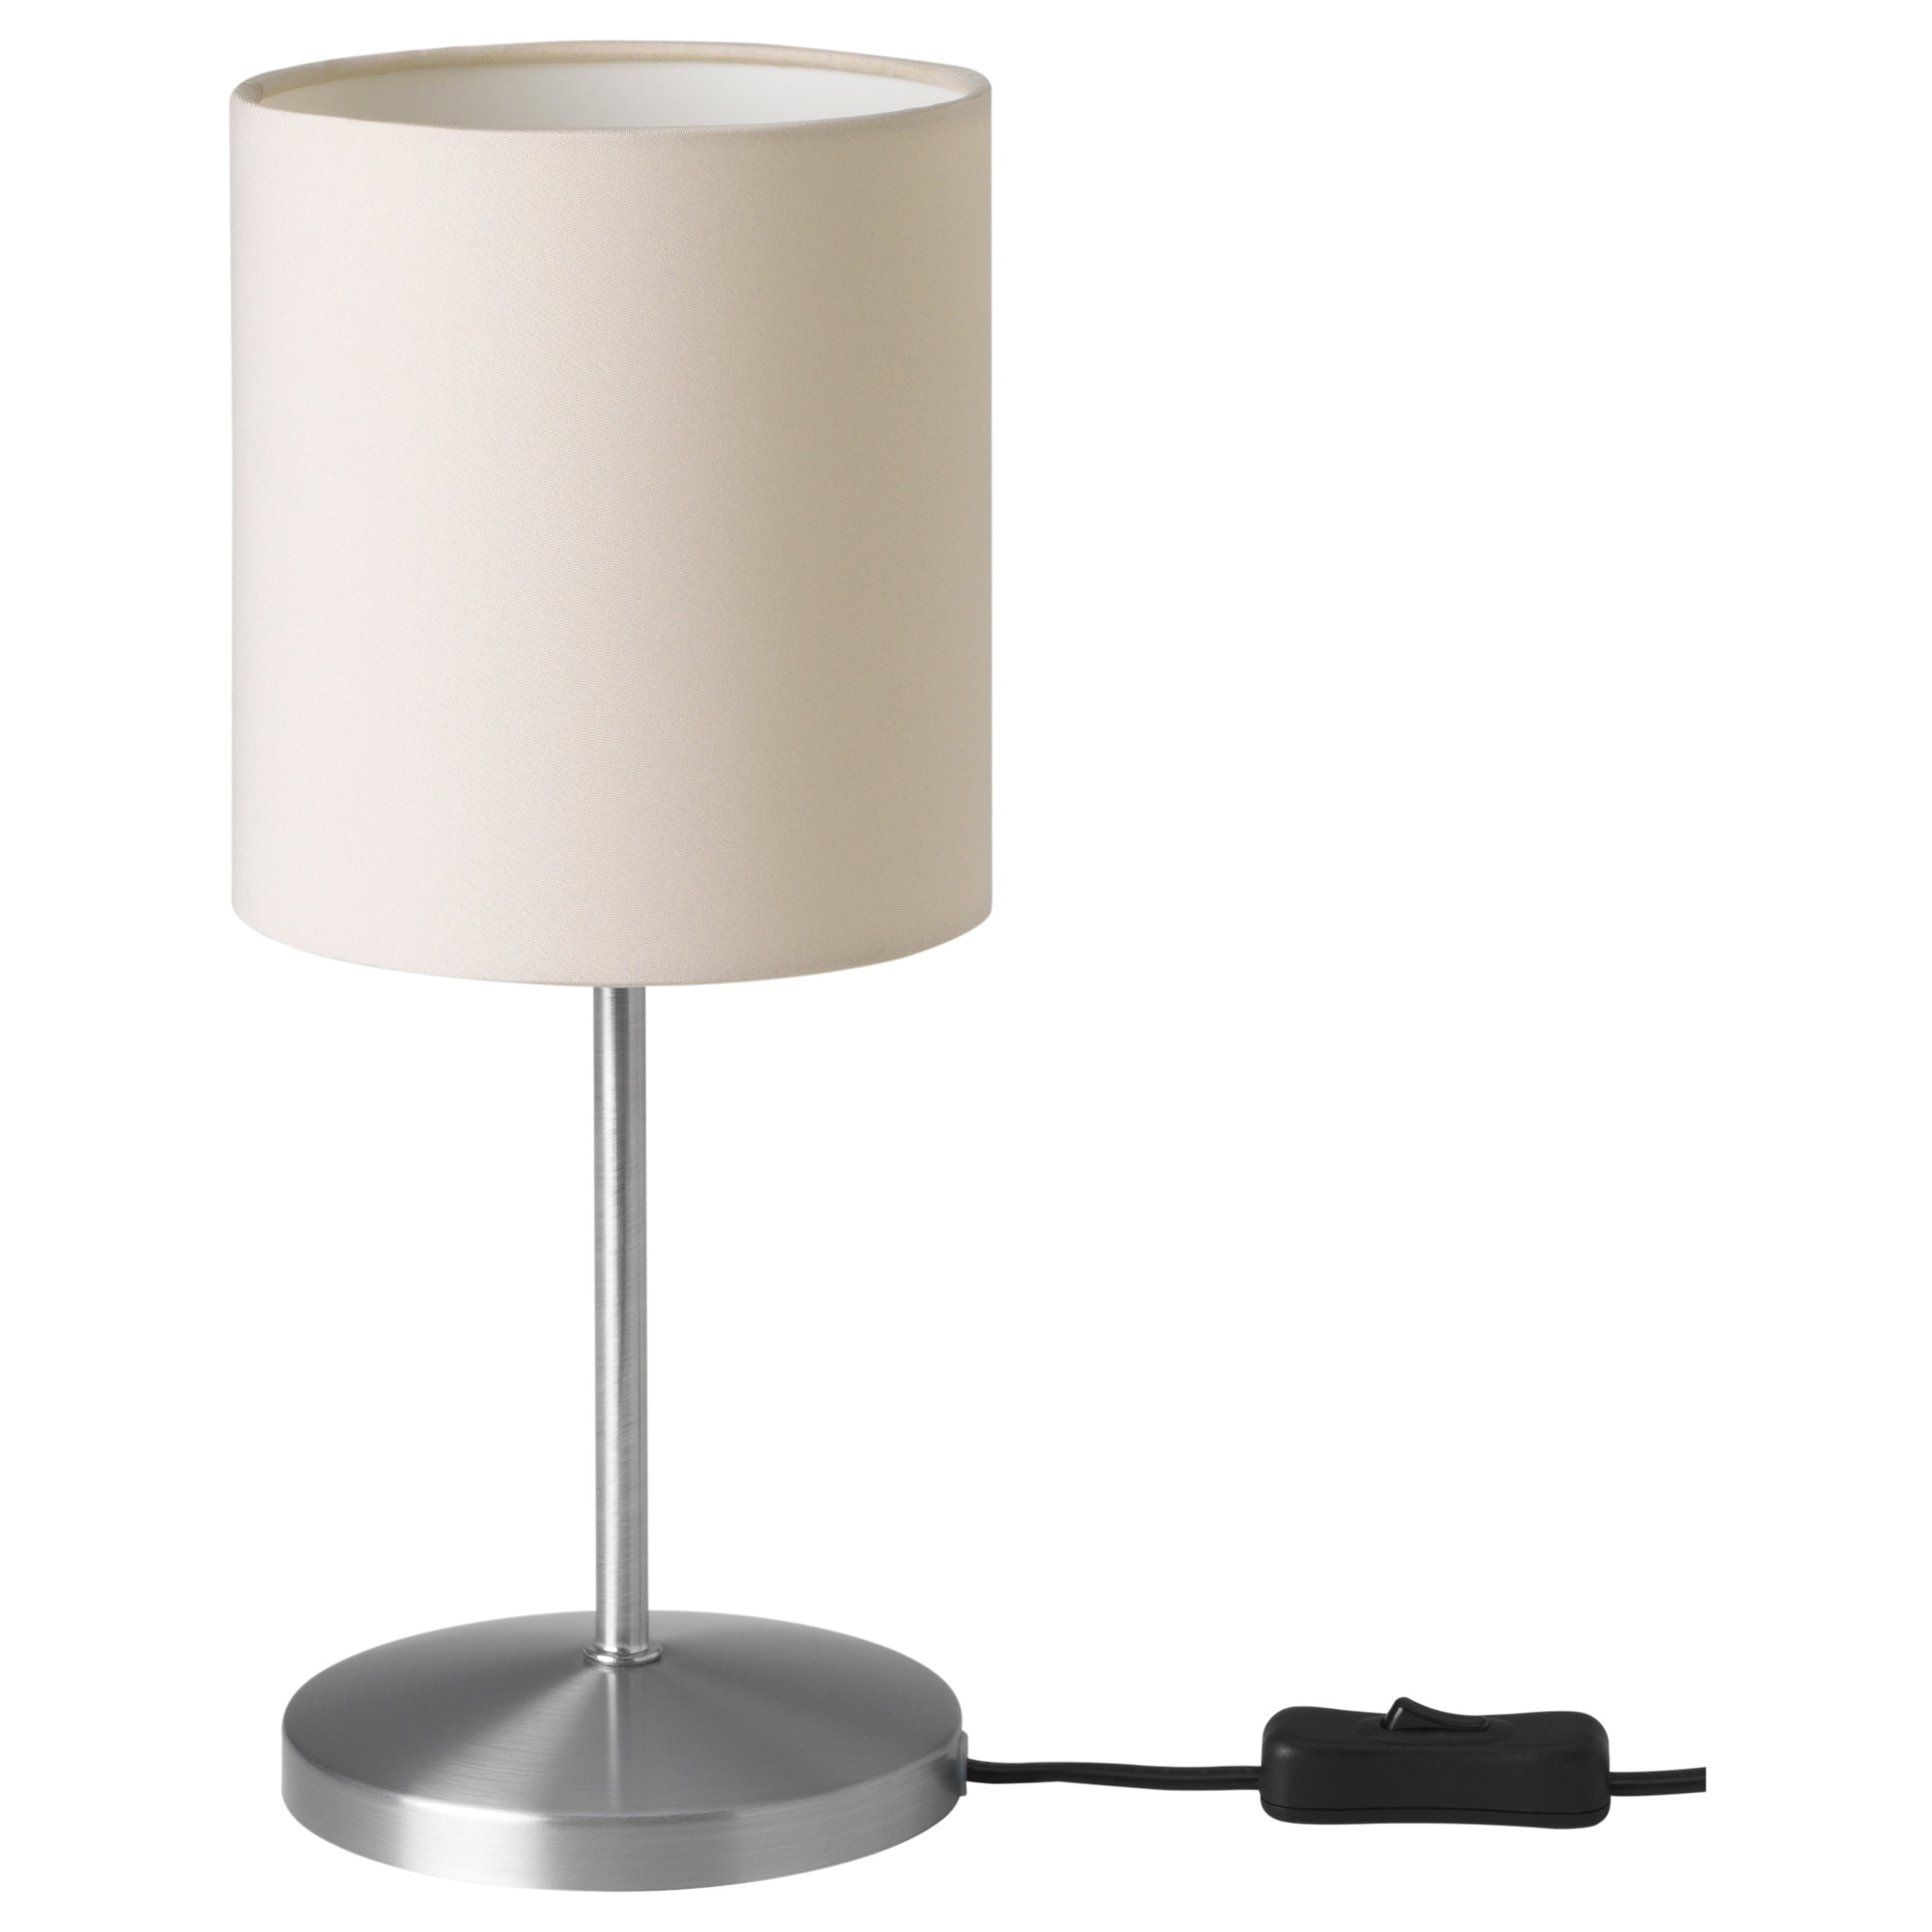 Table lamps ikea ingared table lamp with led bulb beige height 12 diameter 5 geotapseo Choice Image